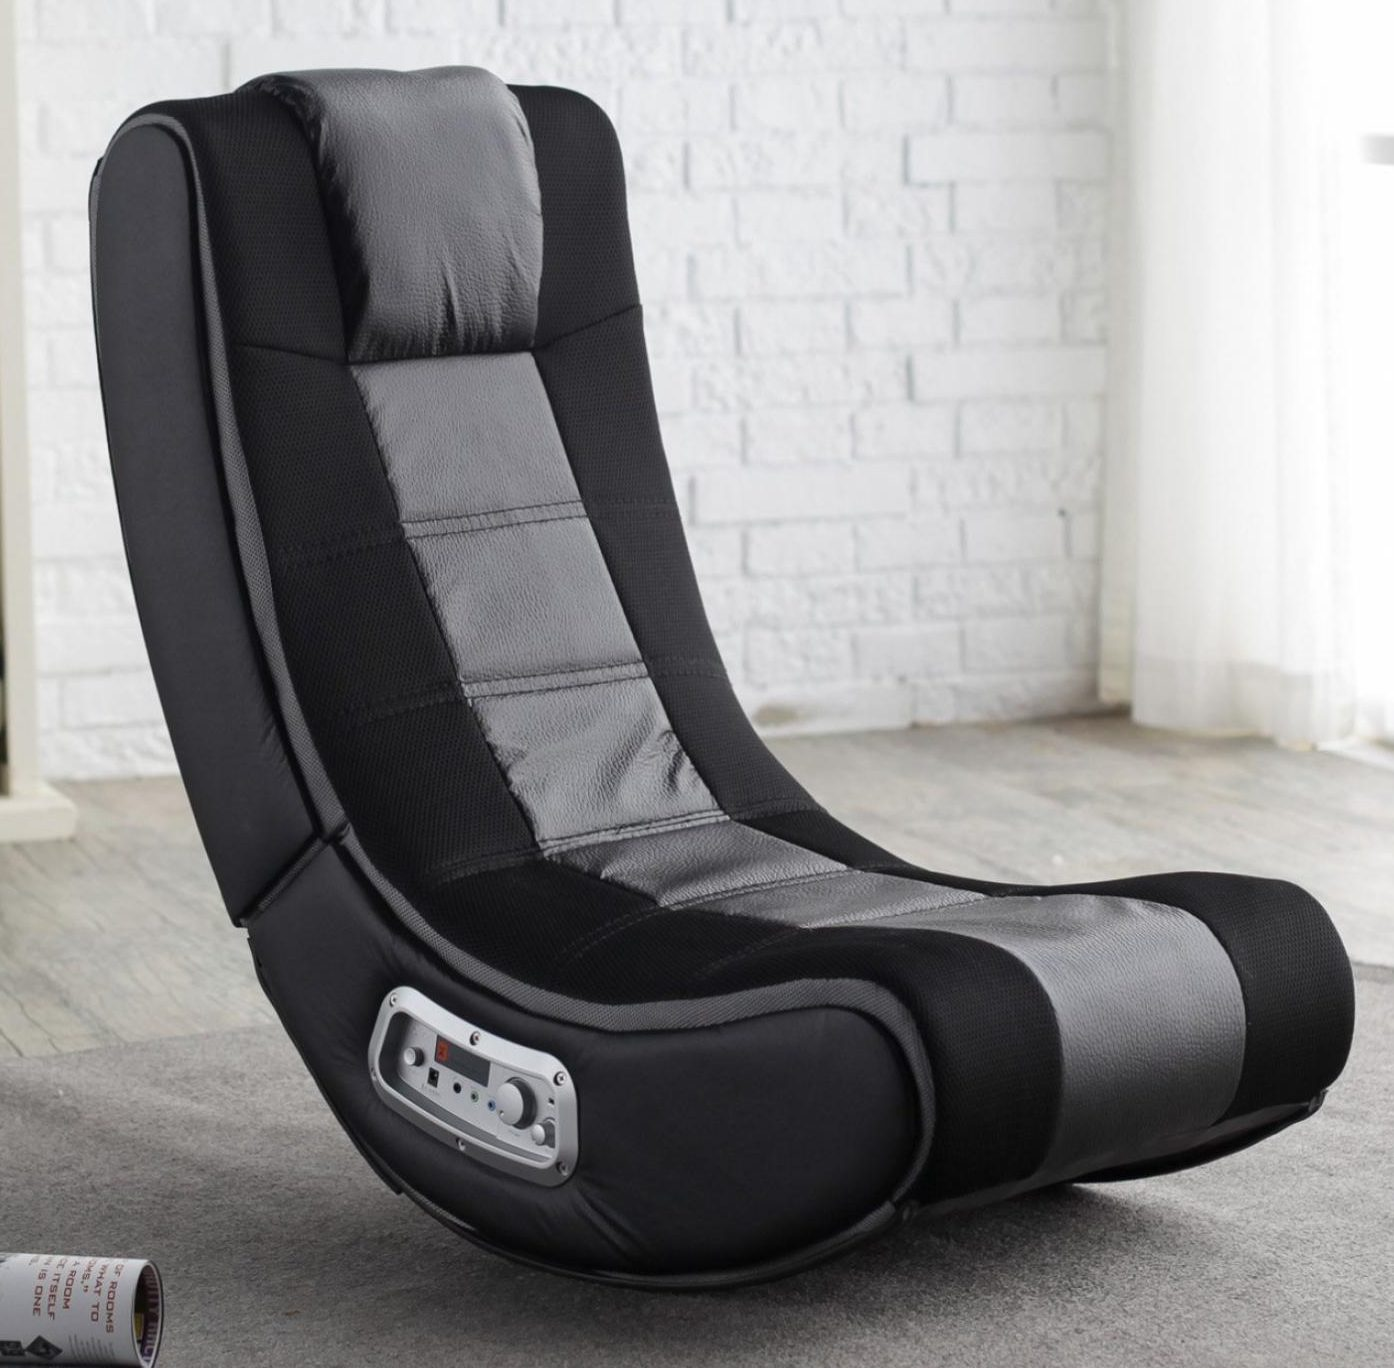 Gaming Chair Walmart X Rocker Extreme Gaming Chair X Rocker Chair  Rocker Gaming Chair Ace Bayou X Rocker Gaming Chair Ps4 Game Chair  Ak Rocker Gaming Chair  ...